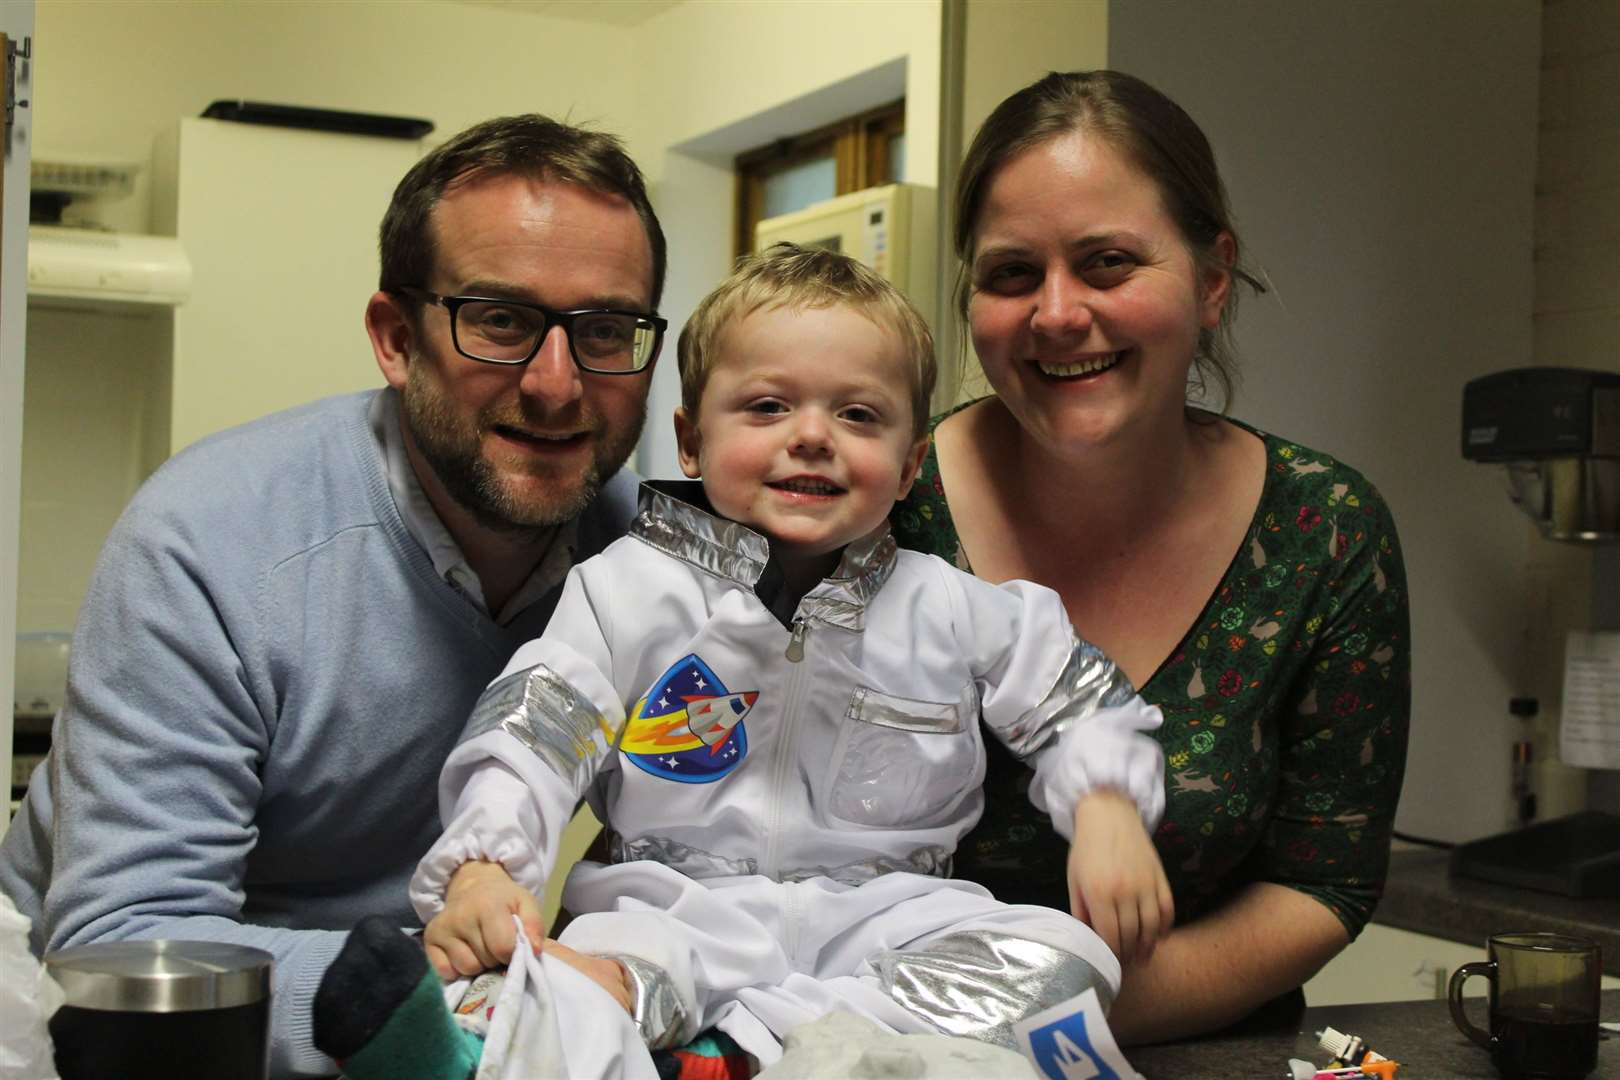 Laurence and Caroline Powell with their four-year-old son, Theo, who has cystic fibrosis